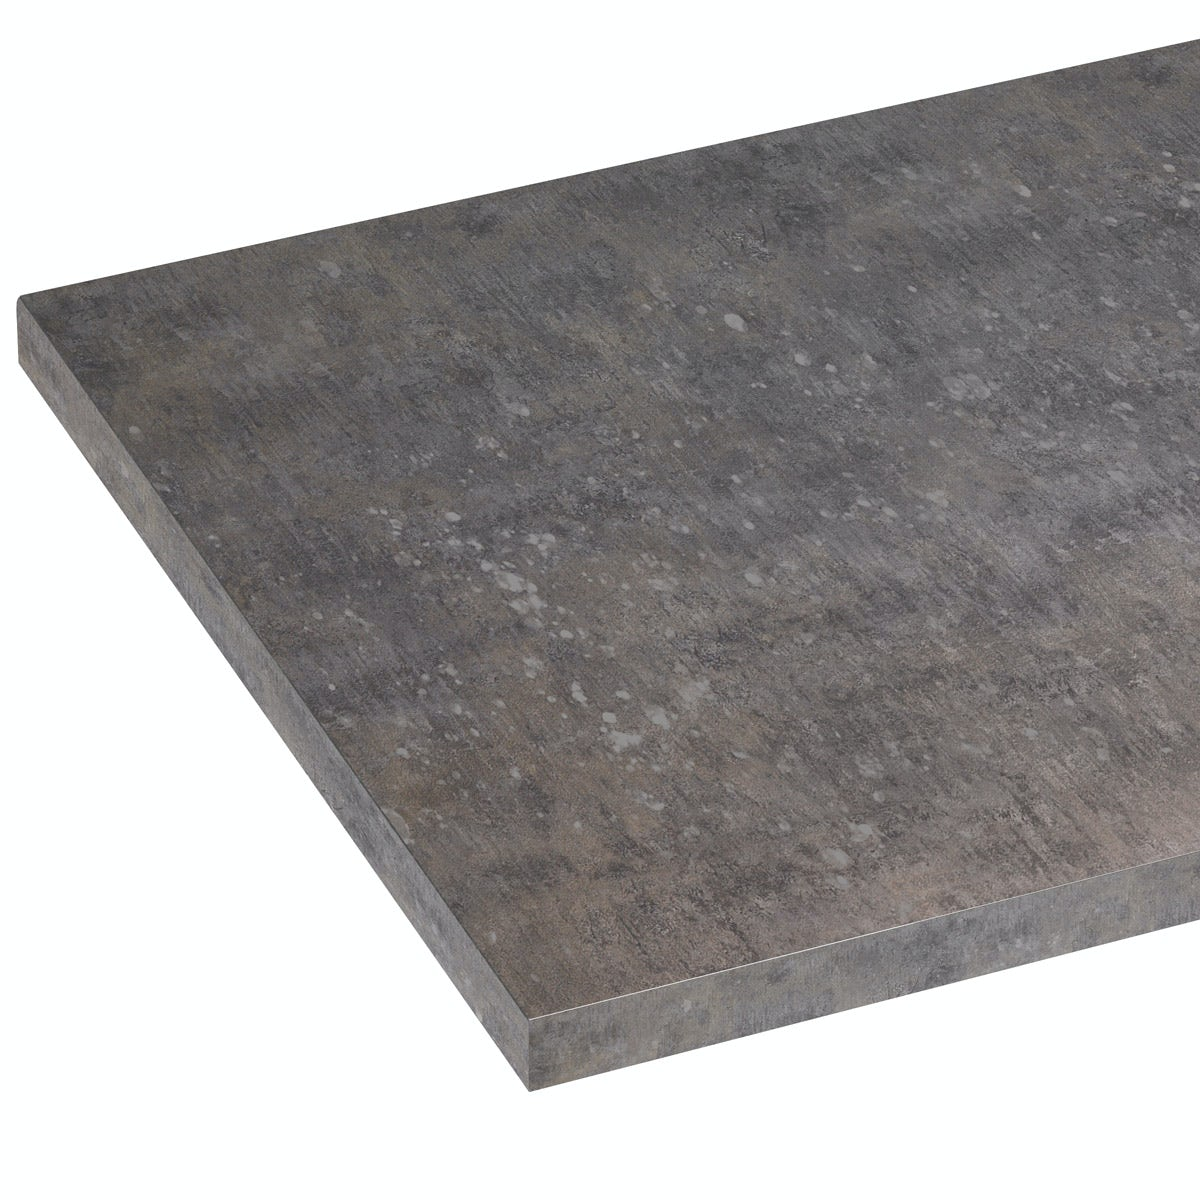 Mode Nouvel mineral grey laminate worktop 1.5m